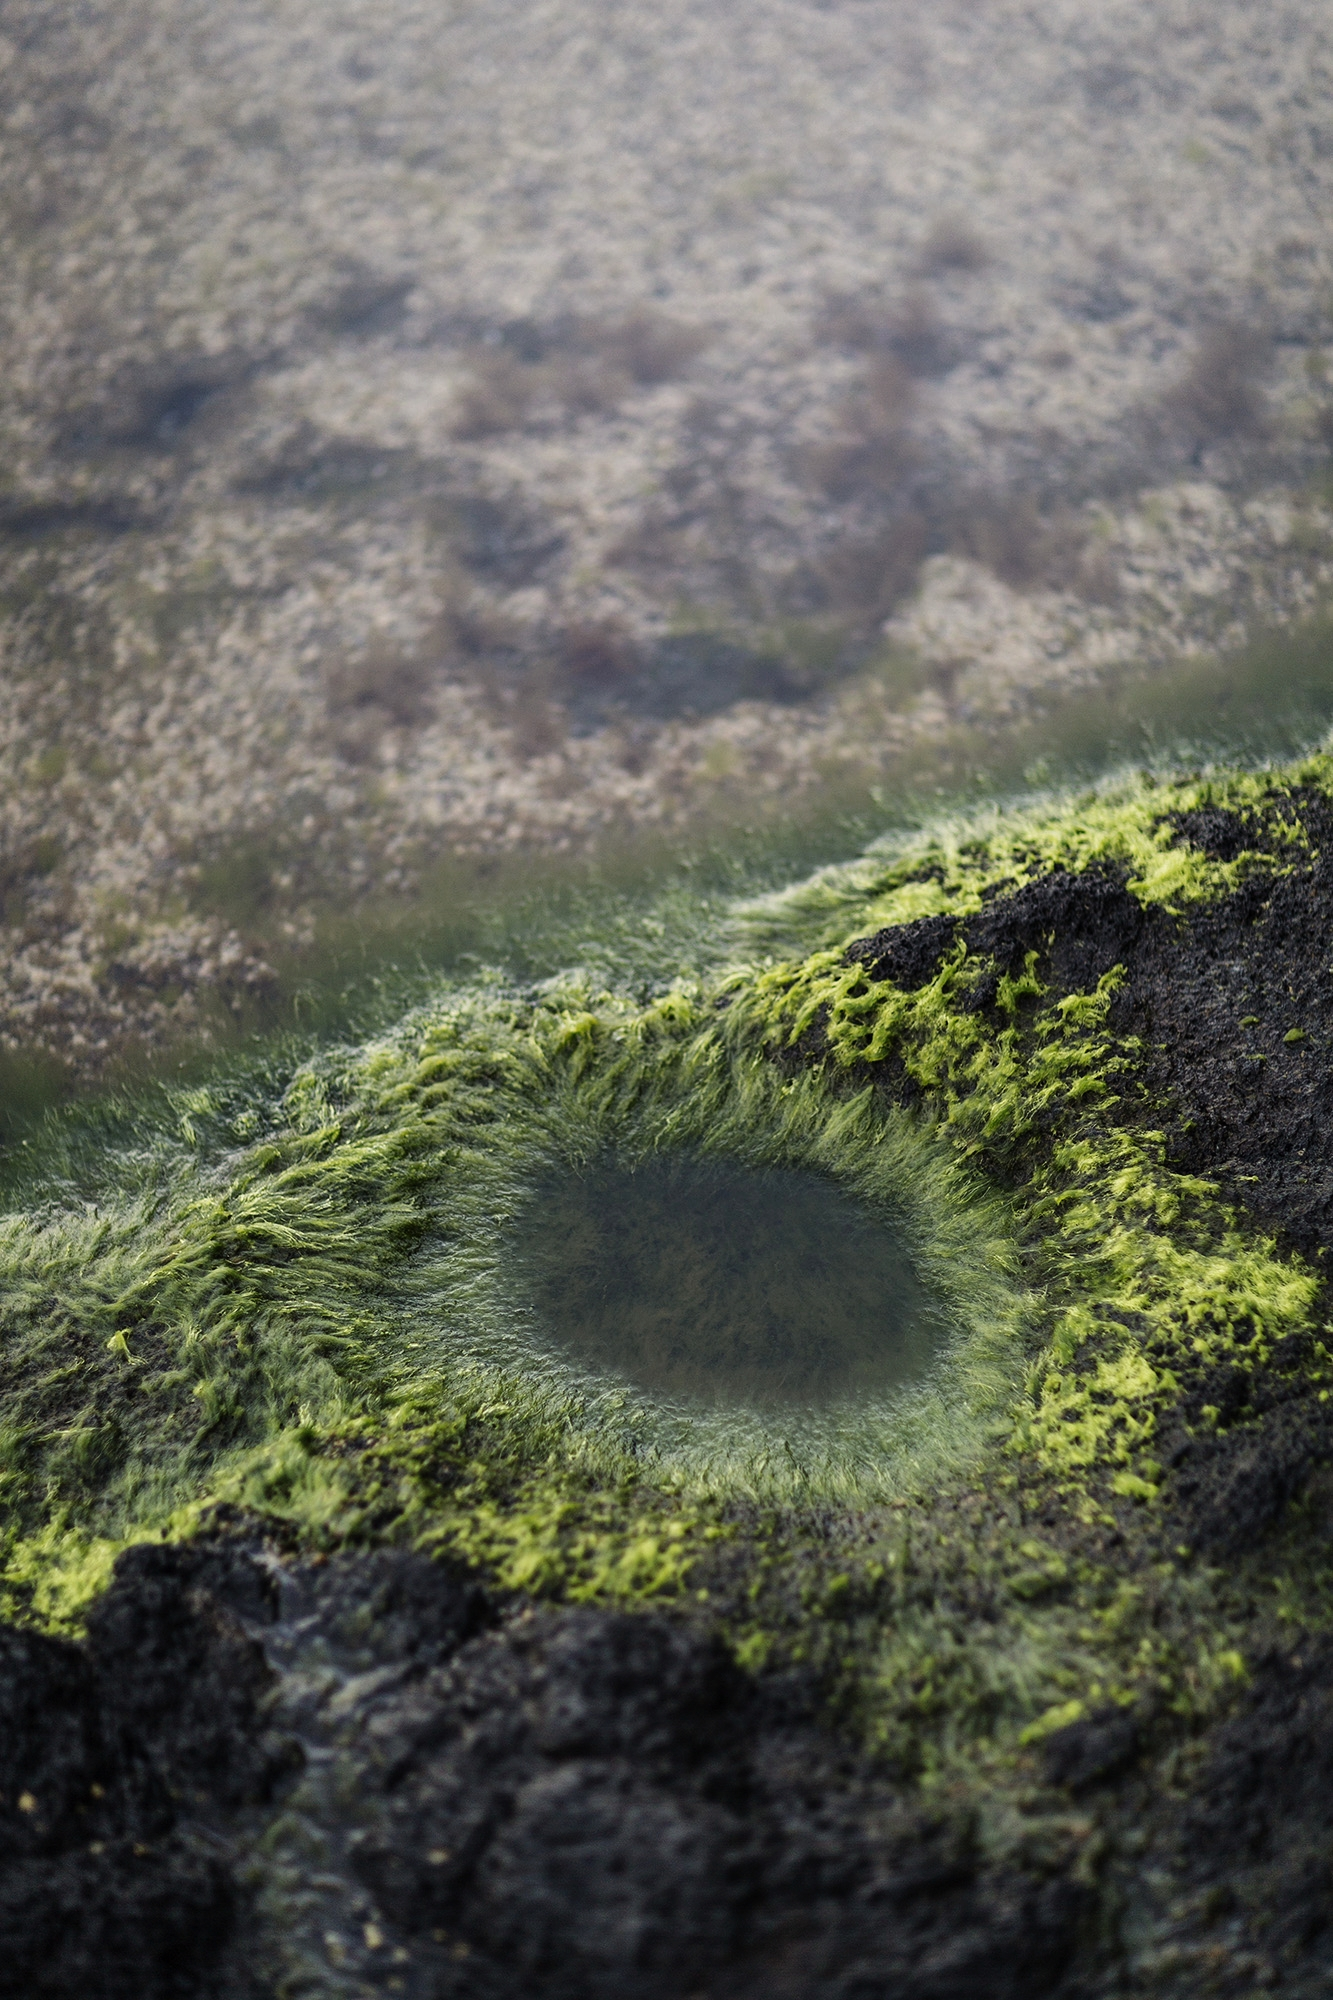 Algae at a local swimming hole in La Gomera in the Canary Islands by Rebecca Stumpf Denver Boulder Colorado Editorial and Commercial Food Travel and Lifestyle Photographer.